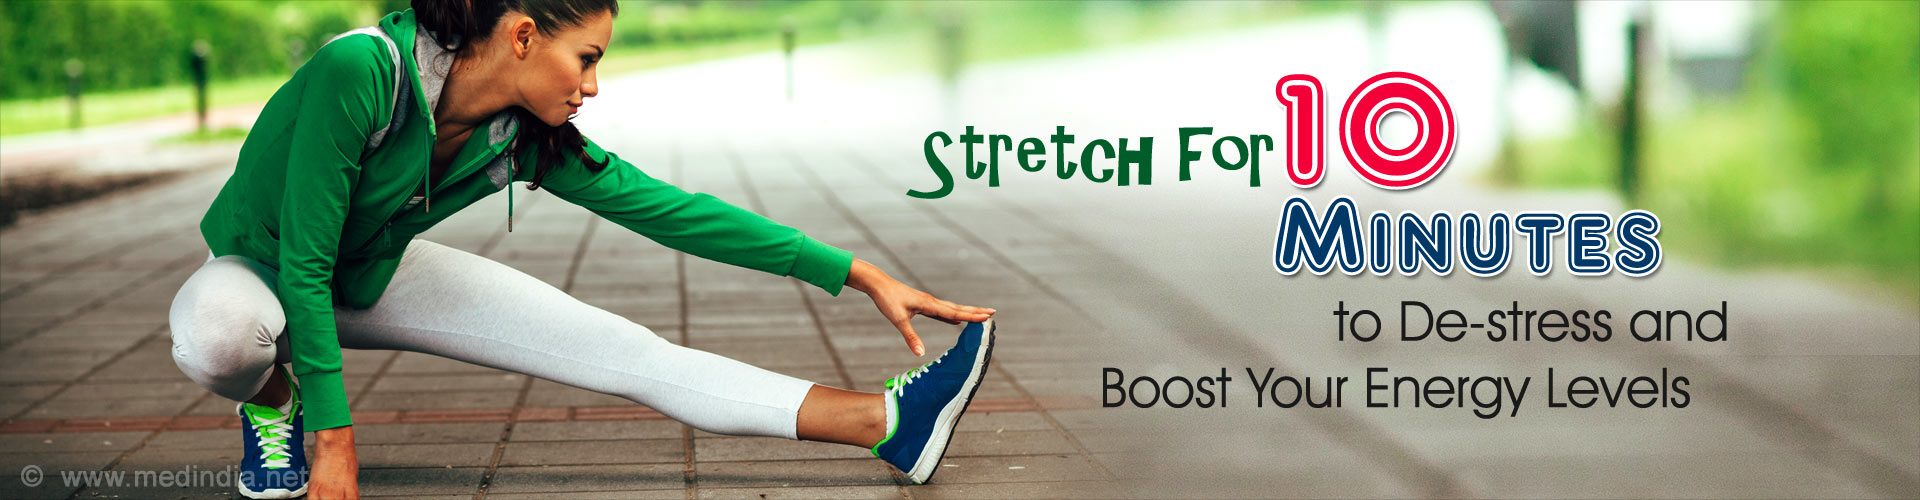 Stretch for 10 Minutes to De-stress and Boost Your Energy Levels